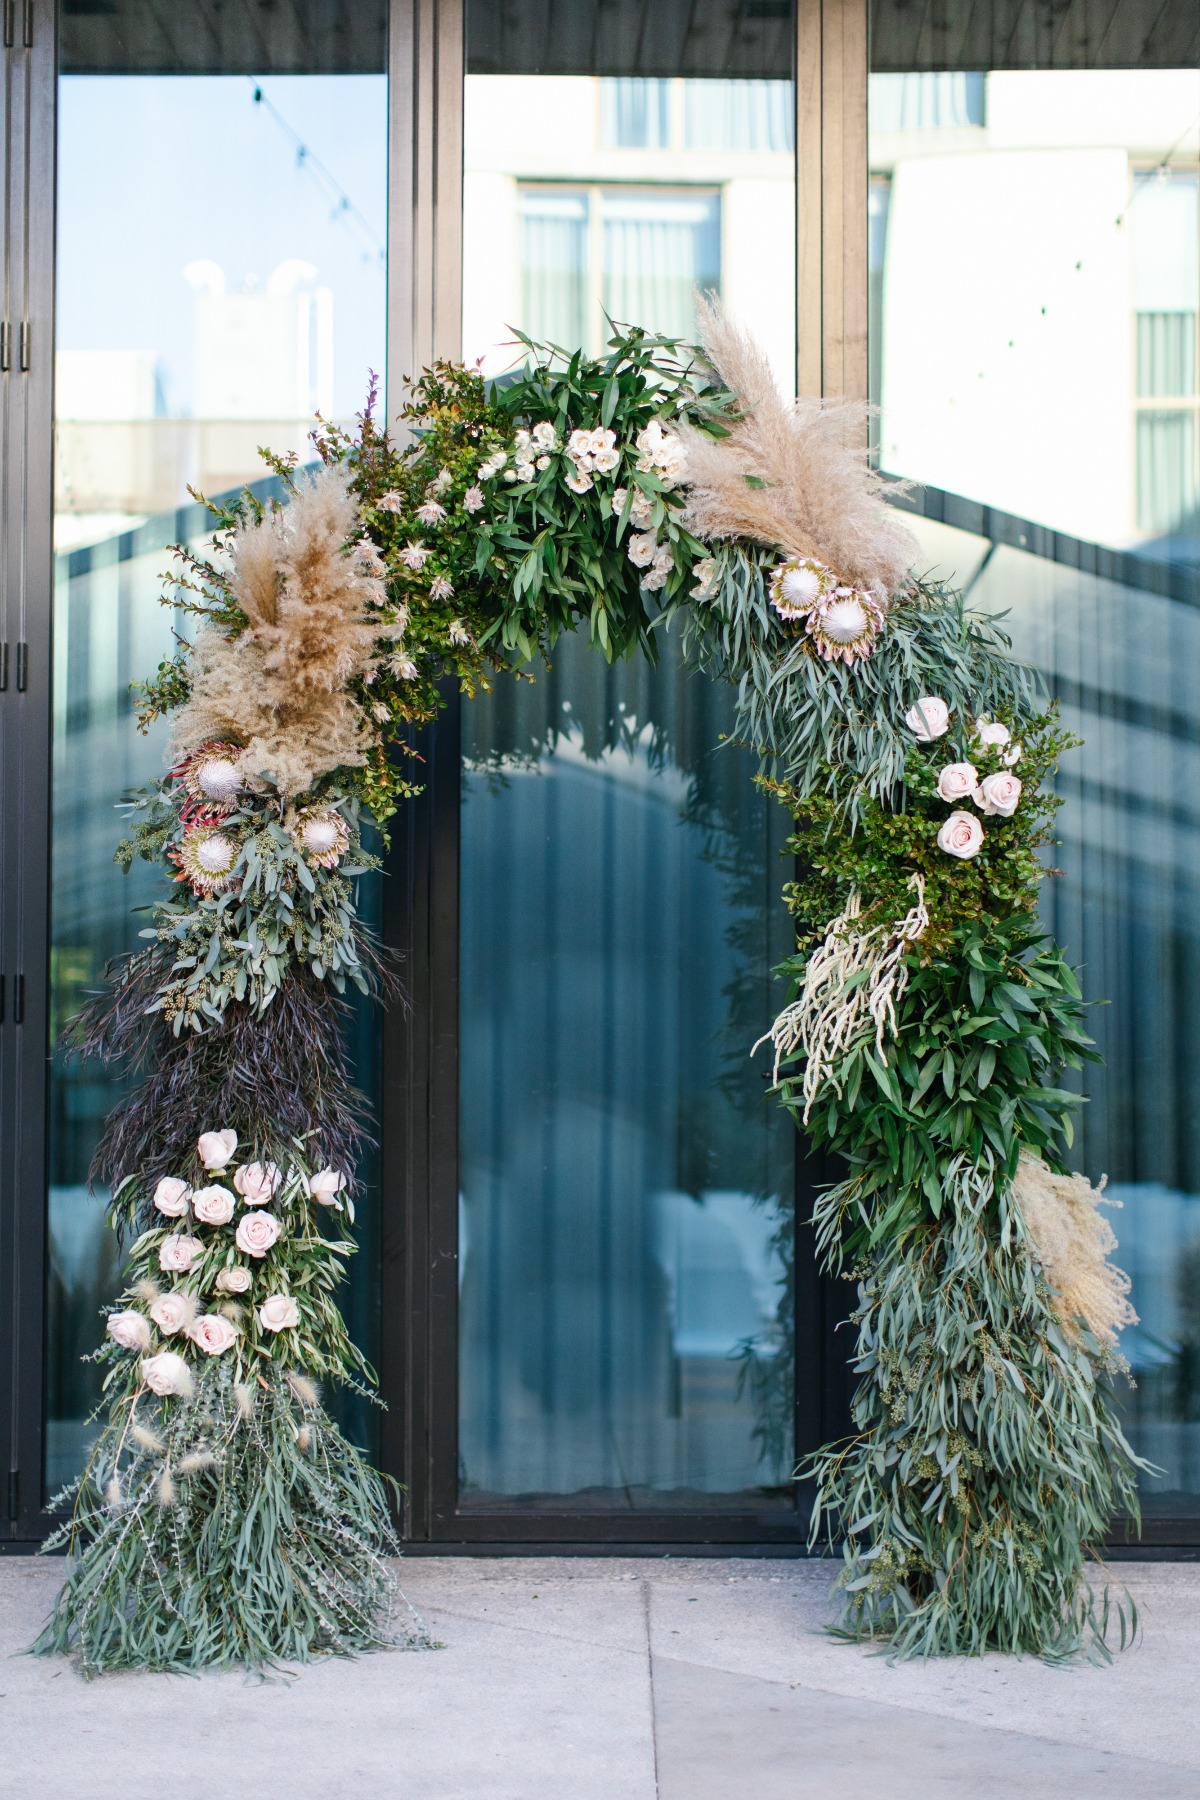 Wedding arch decorated with eucalyptus, protea and paps grass